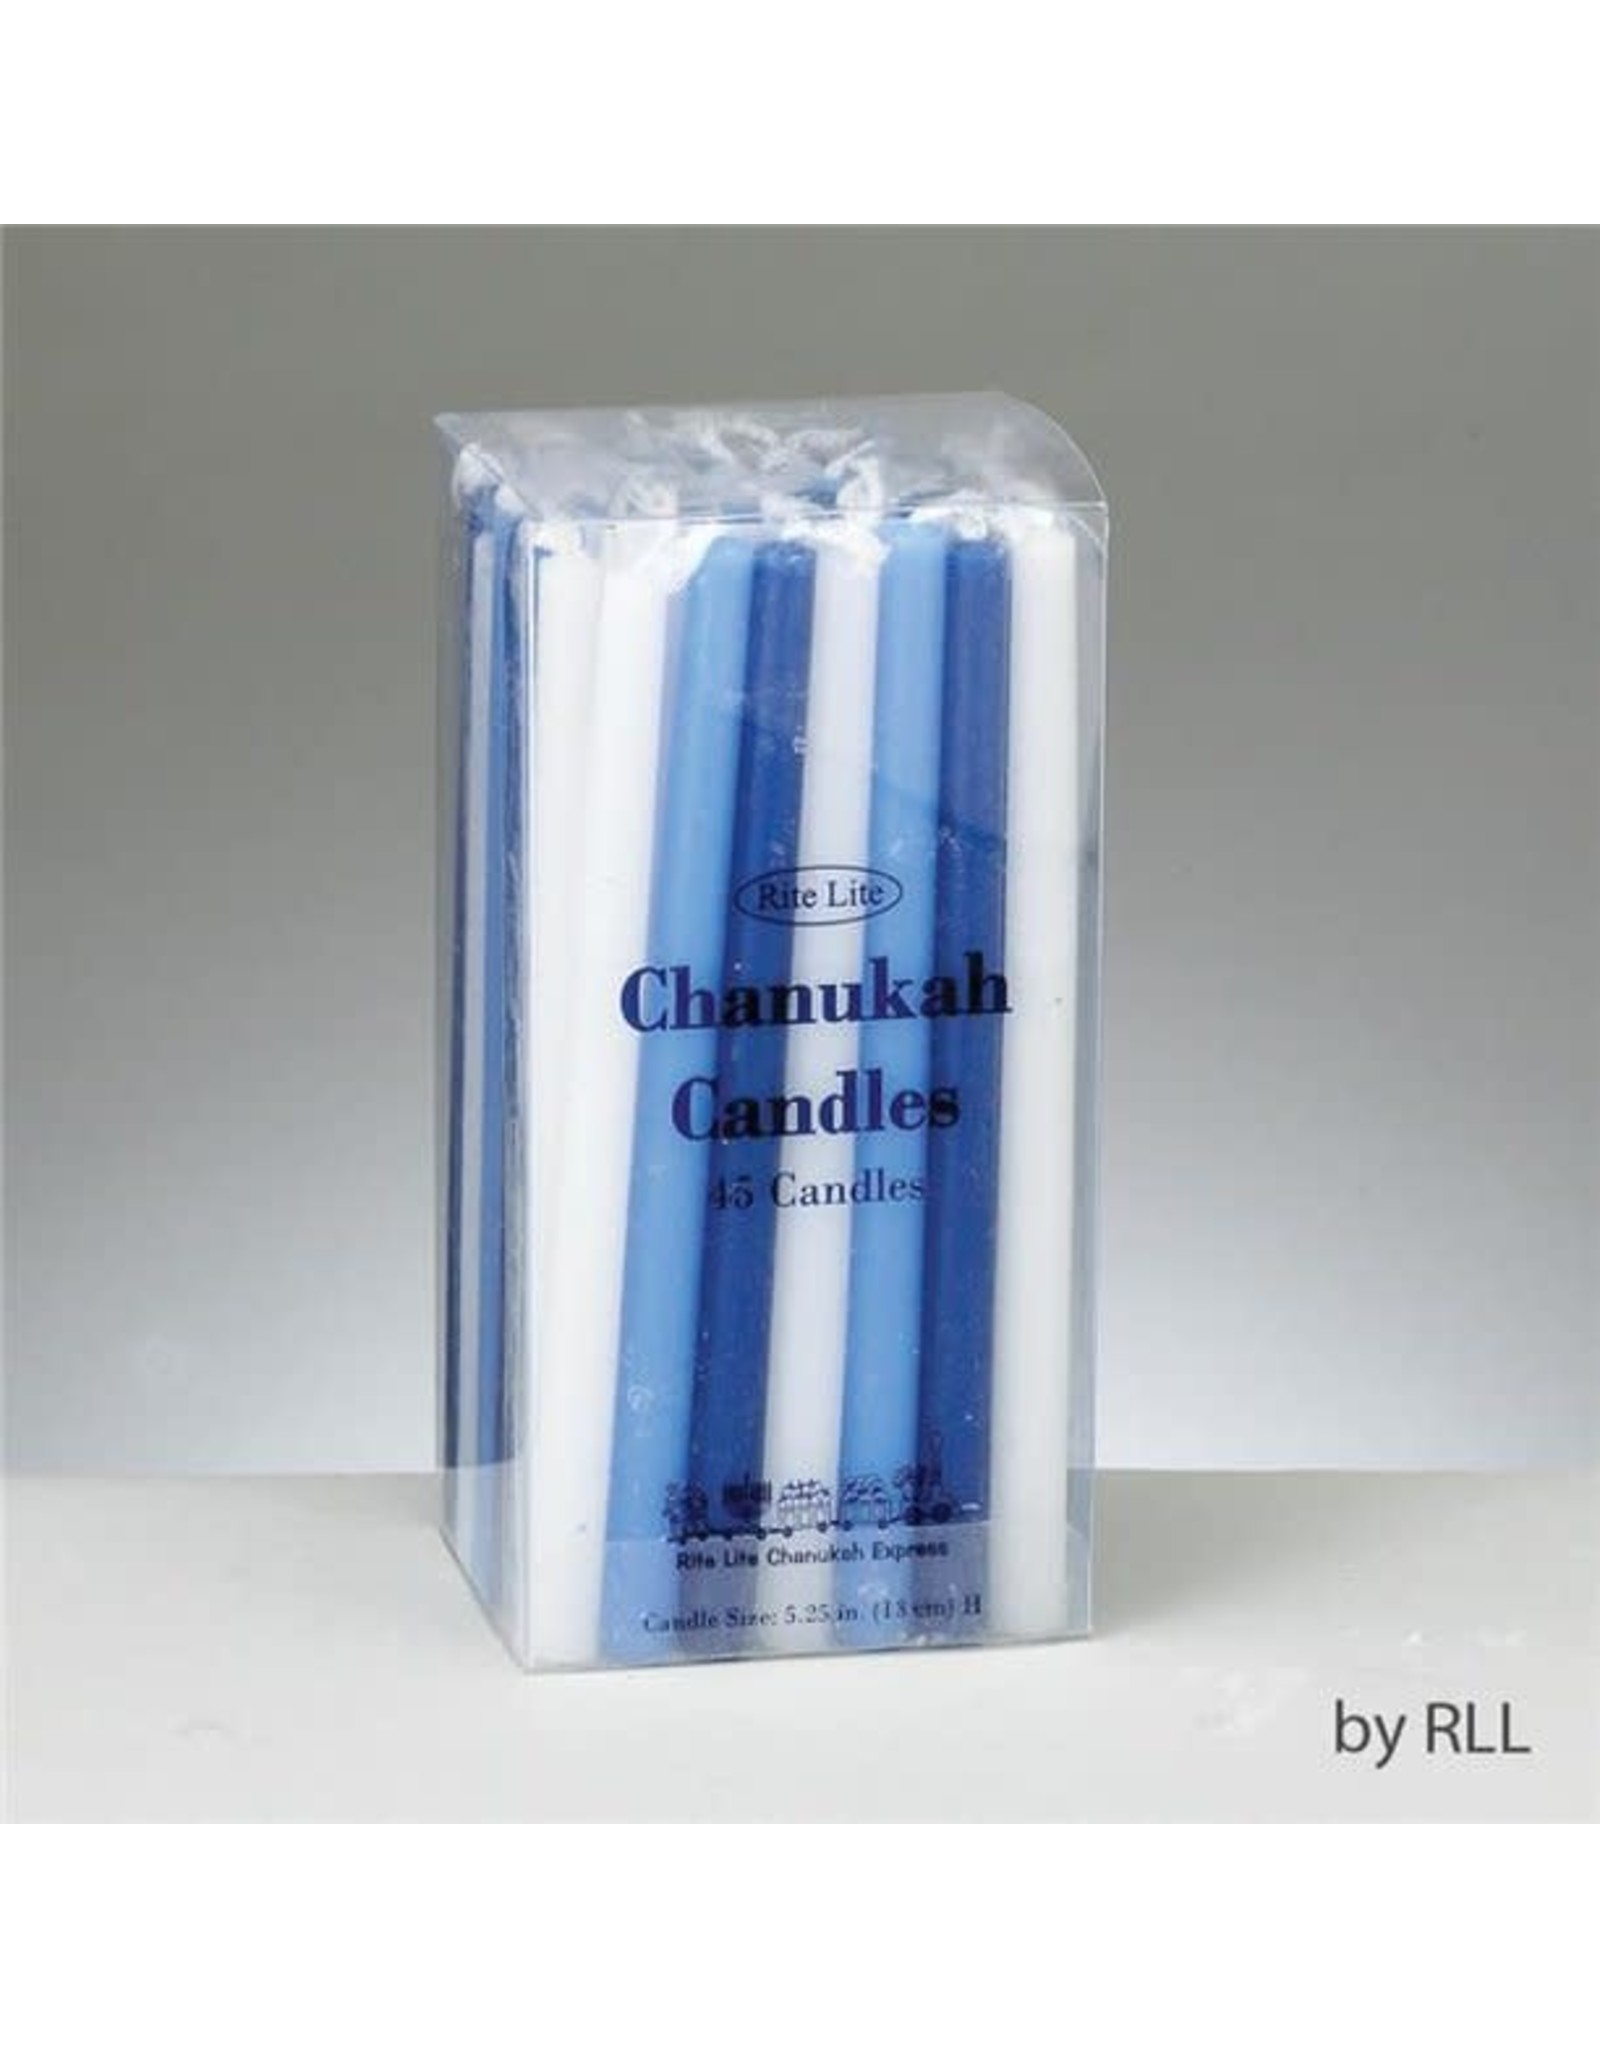 Chanukah Candles Assorted blue and white